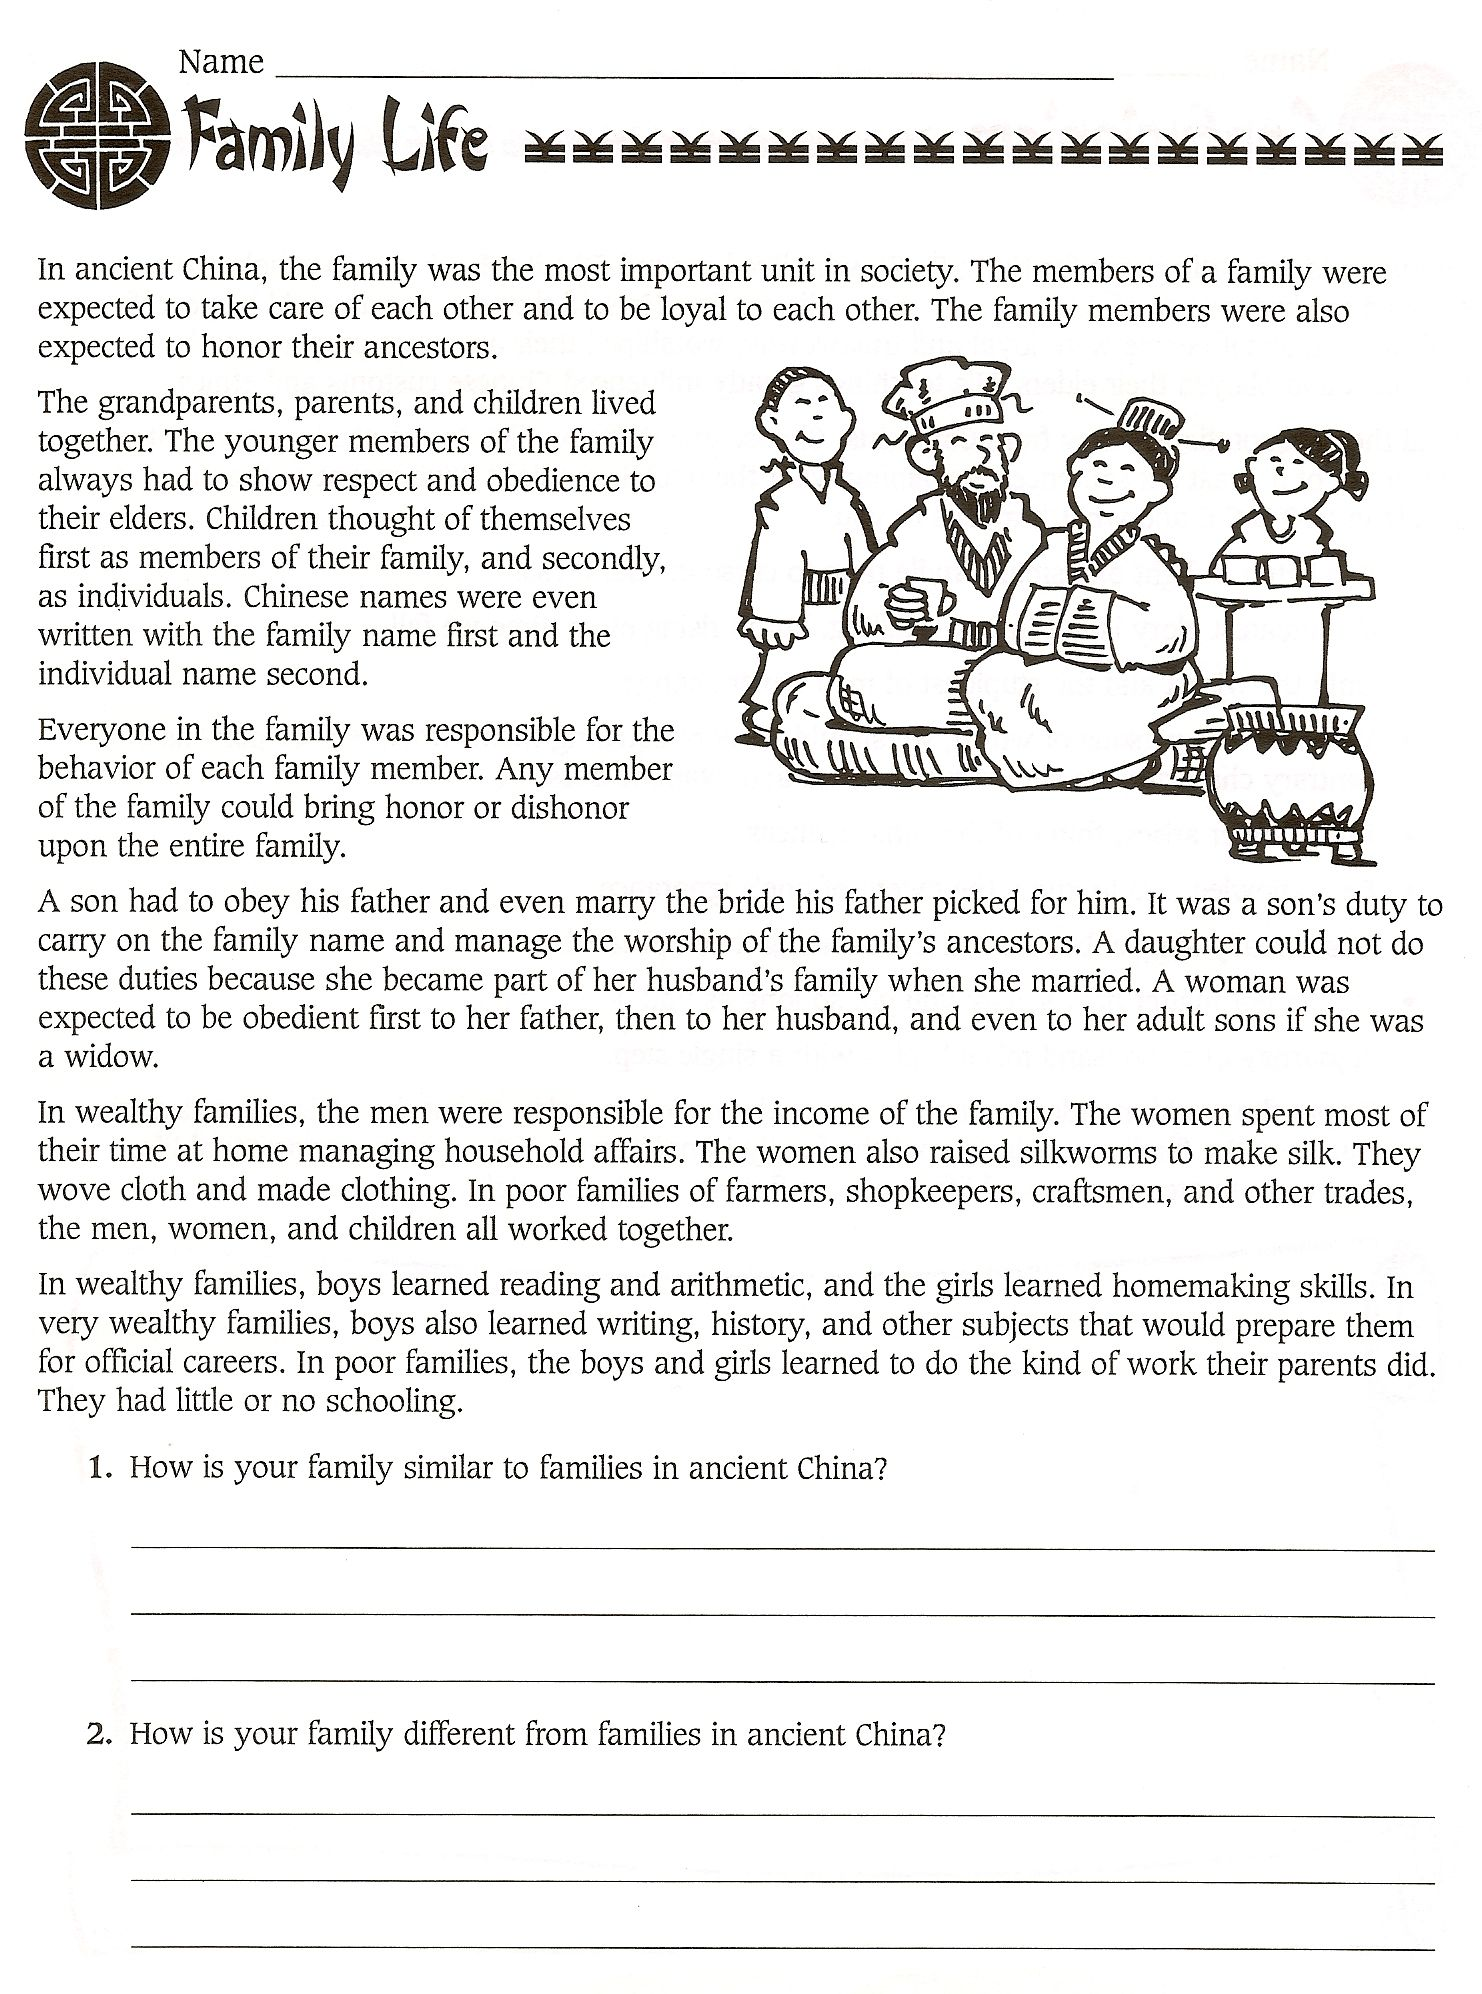 Worksheets Social Studies Worksheets For 6th Grade 6th grade social studies ancient china worksheets free free